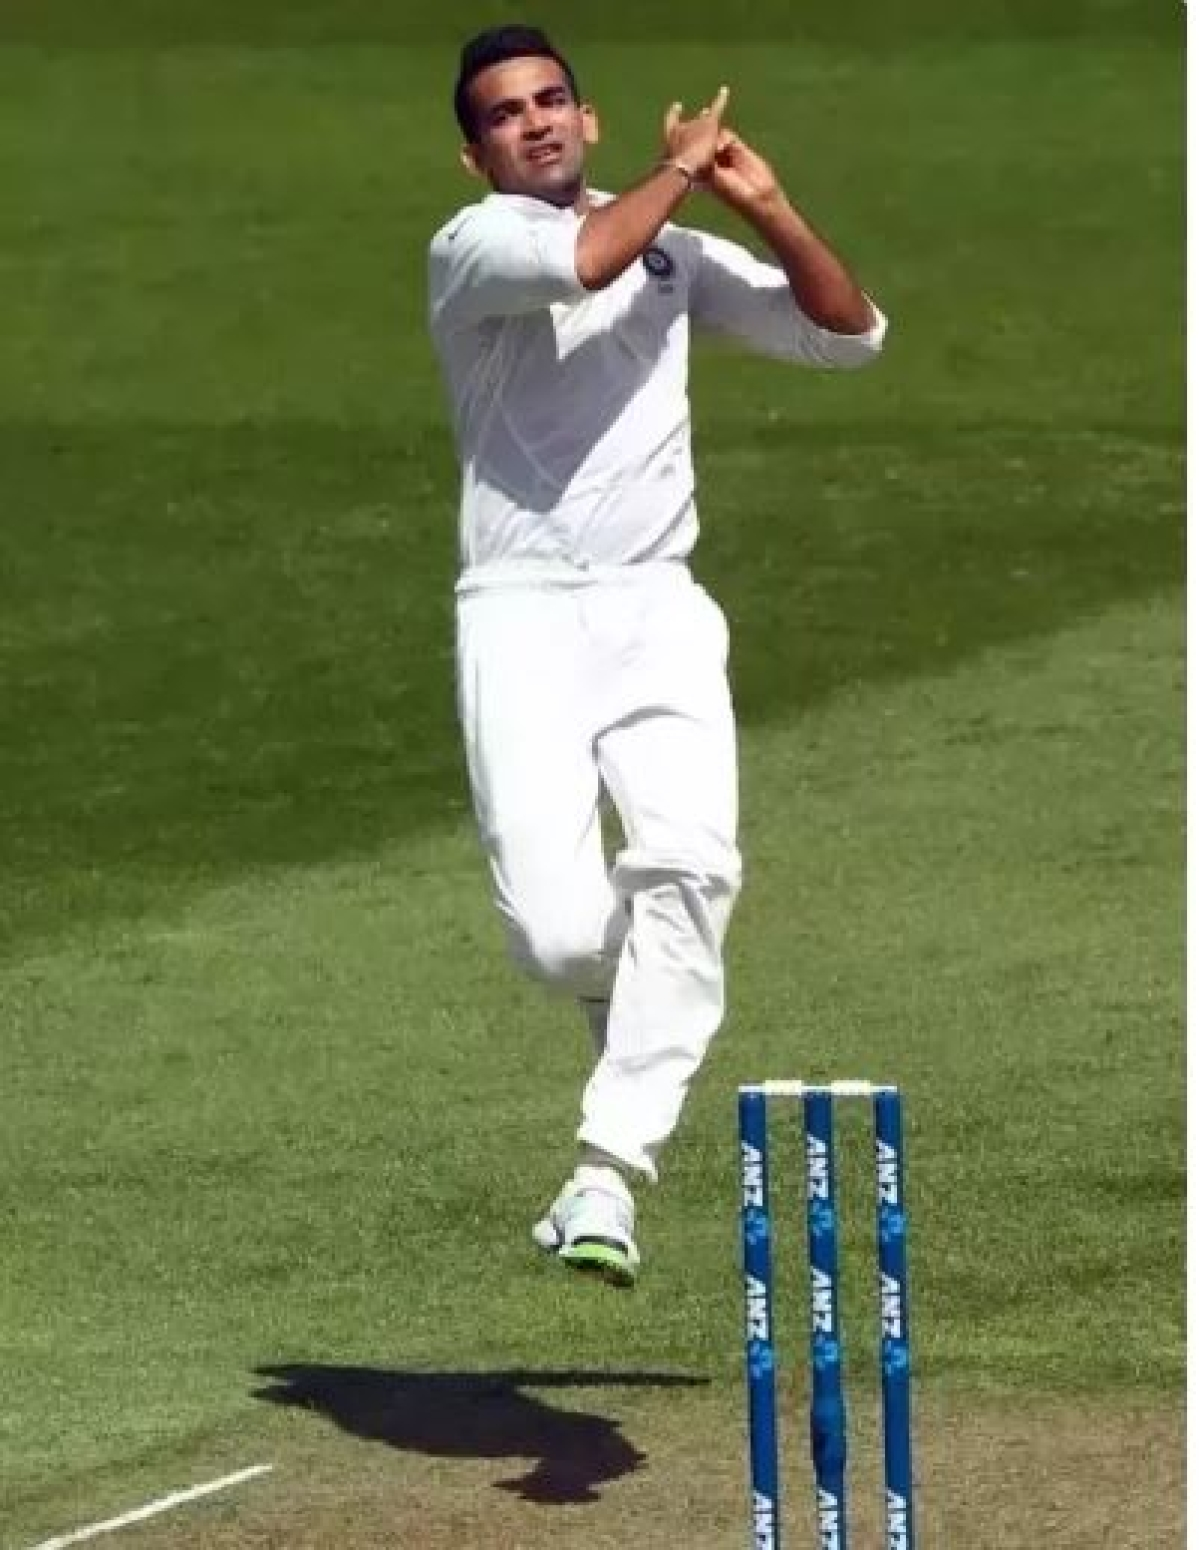 More focus on bowlers; Longer period, considering their higher chances of getting injured